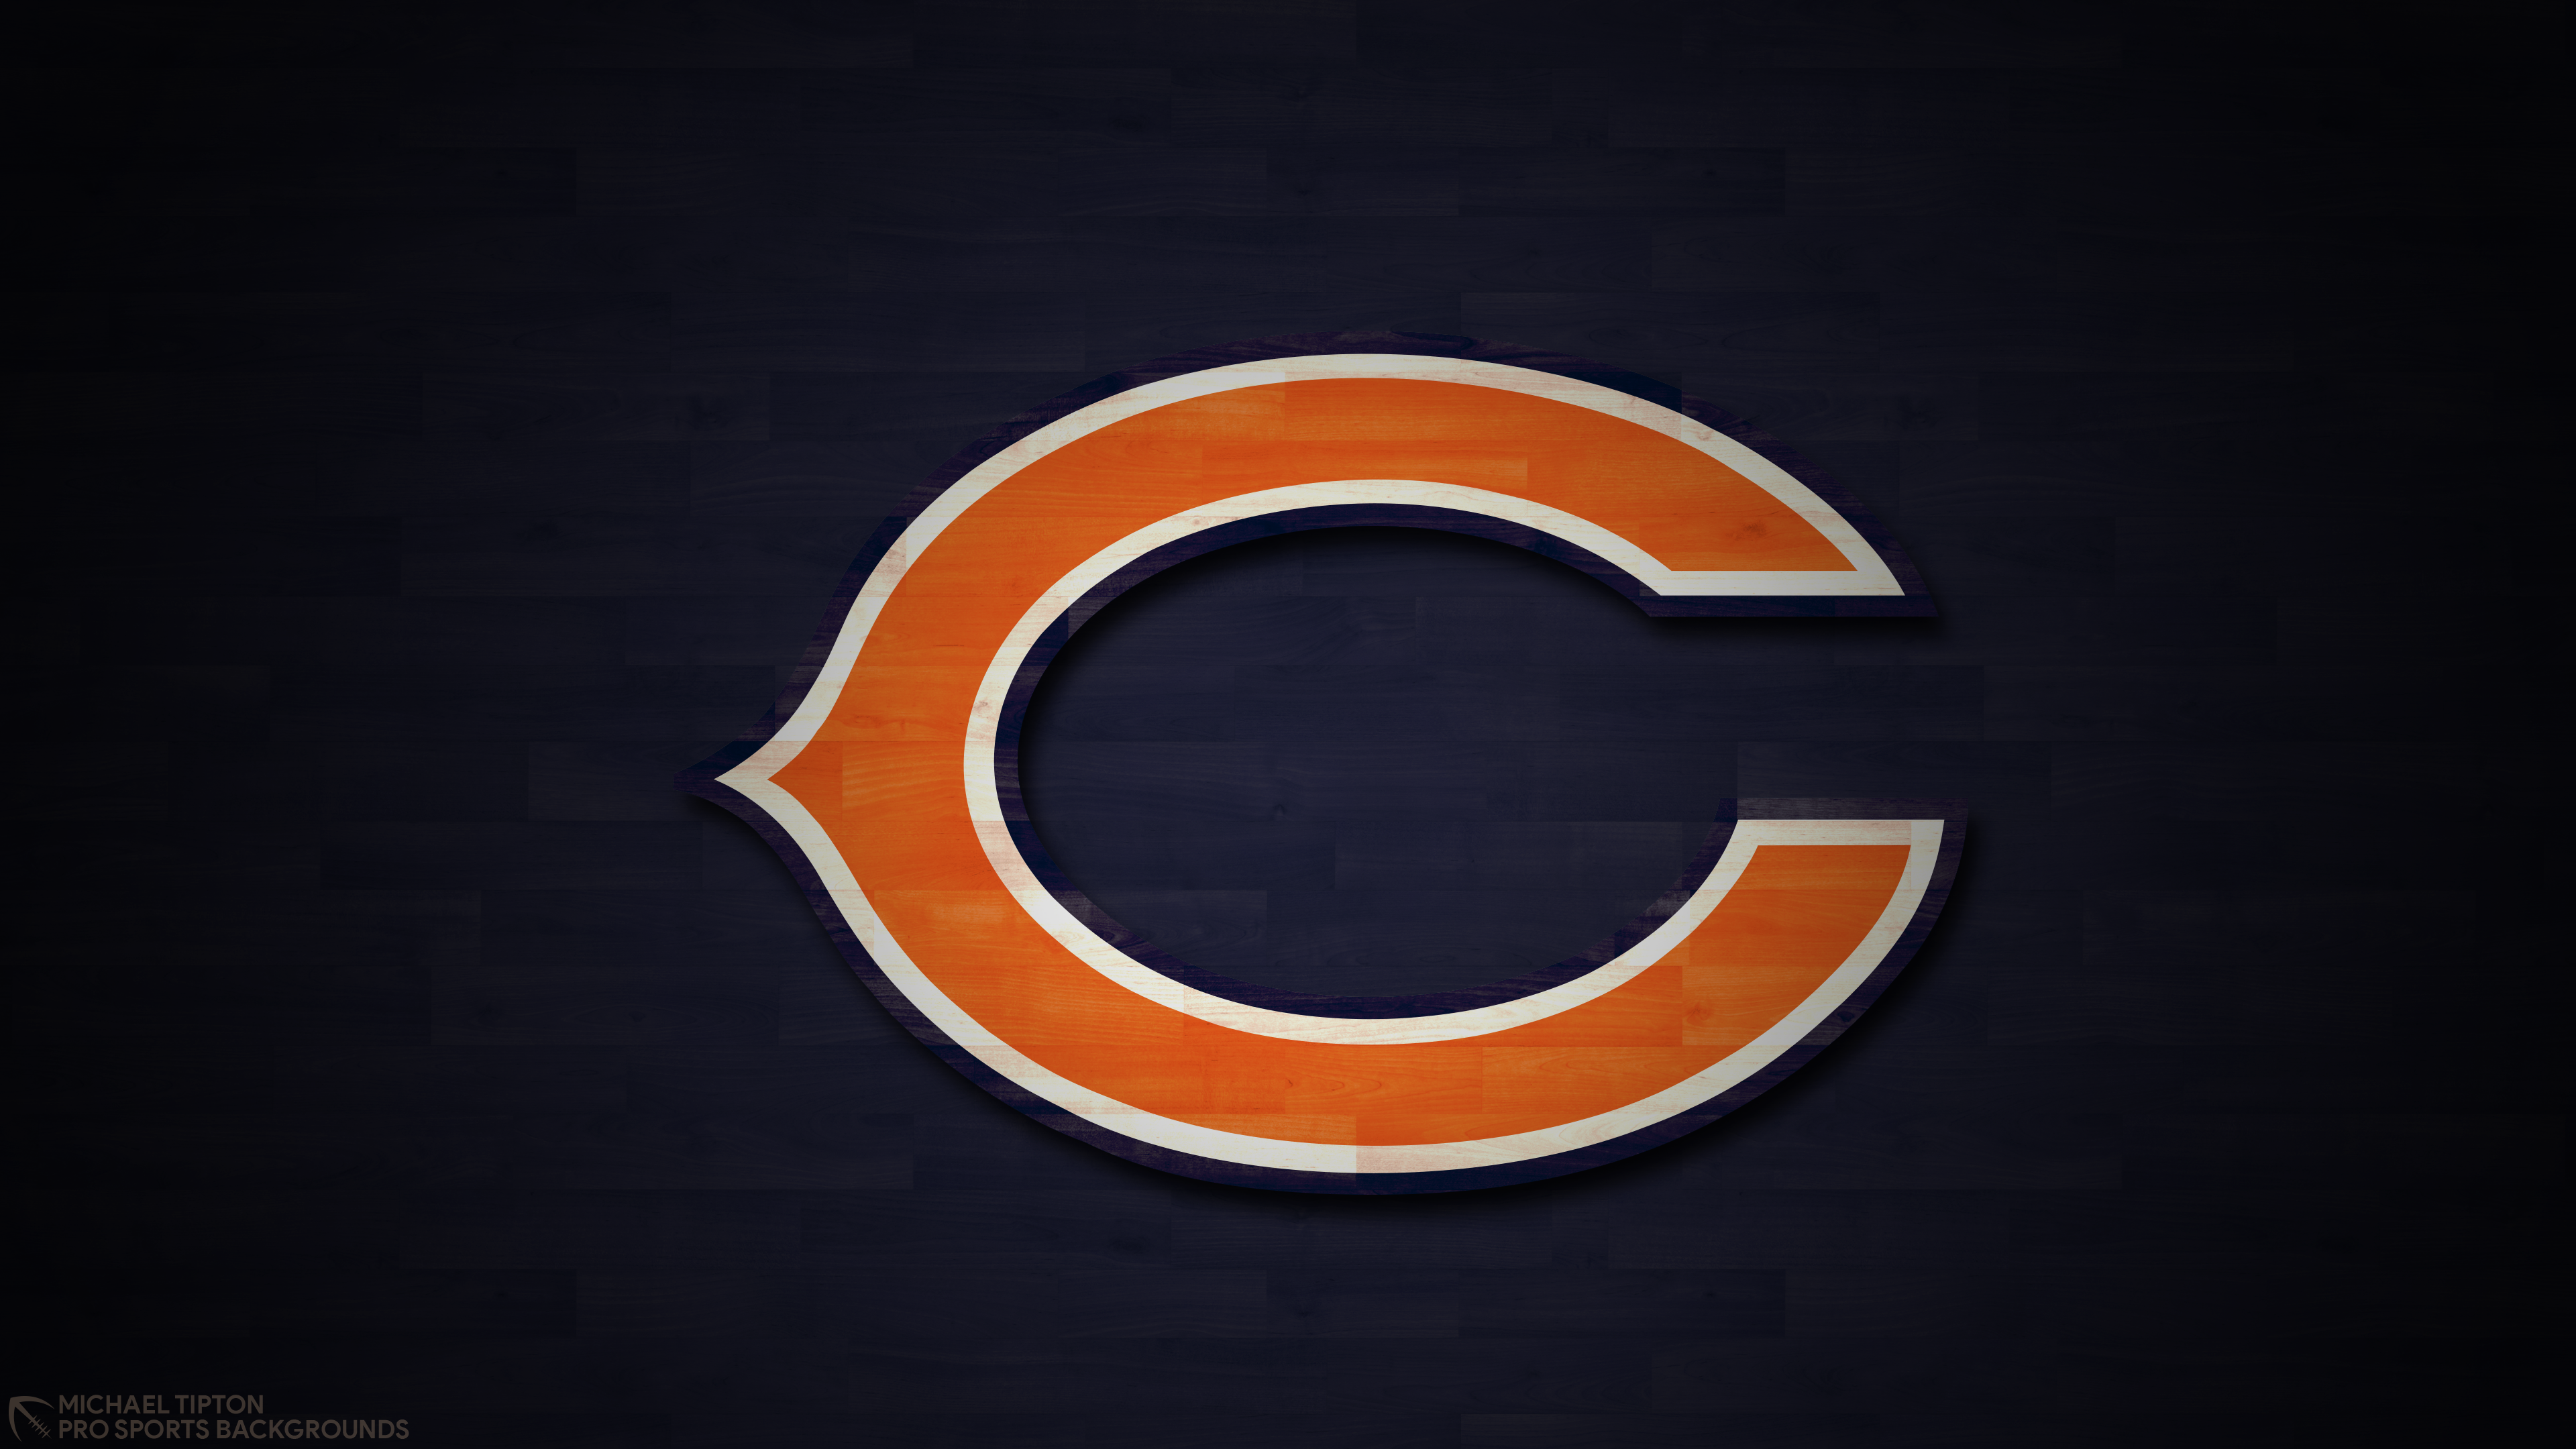 2019 Chicago Bears Wallpapers Pro Sports Backgrounds